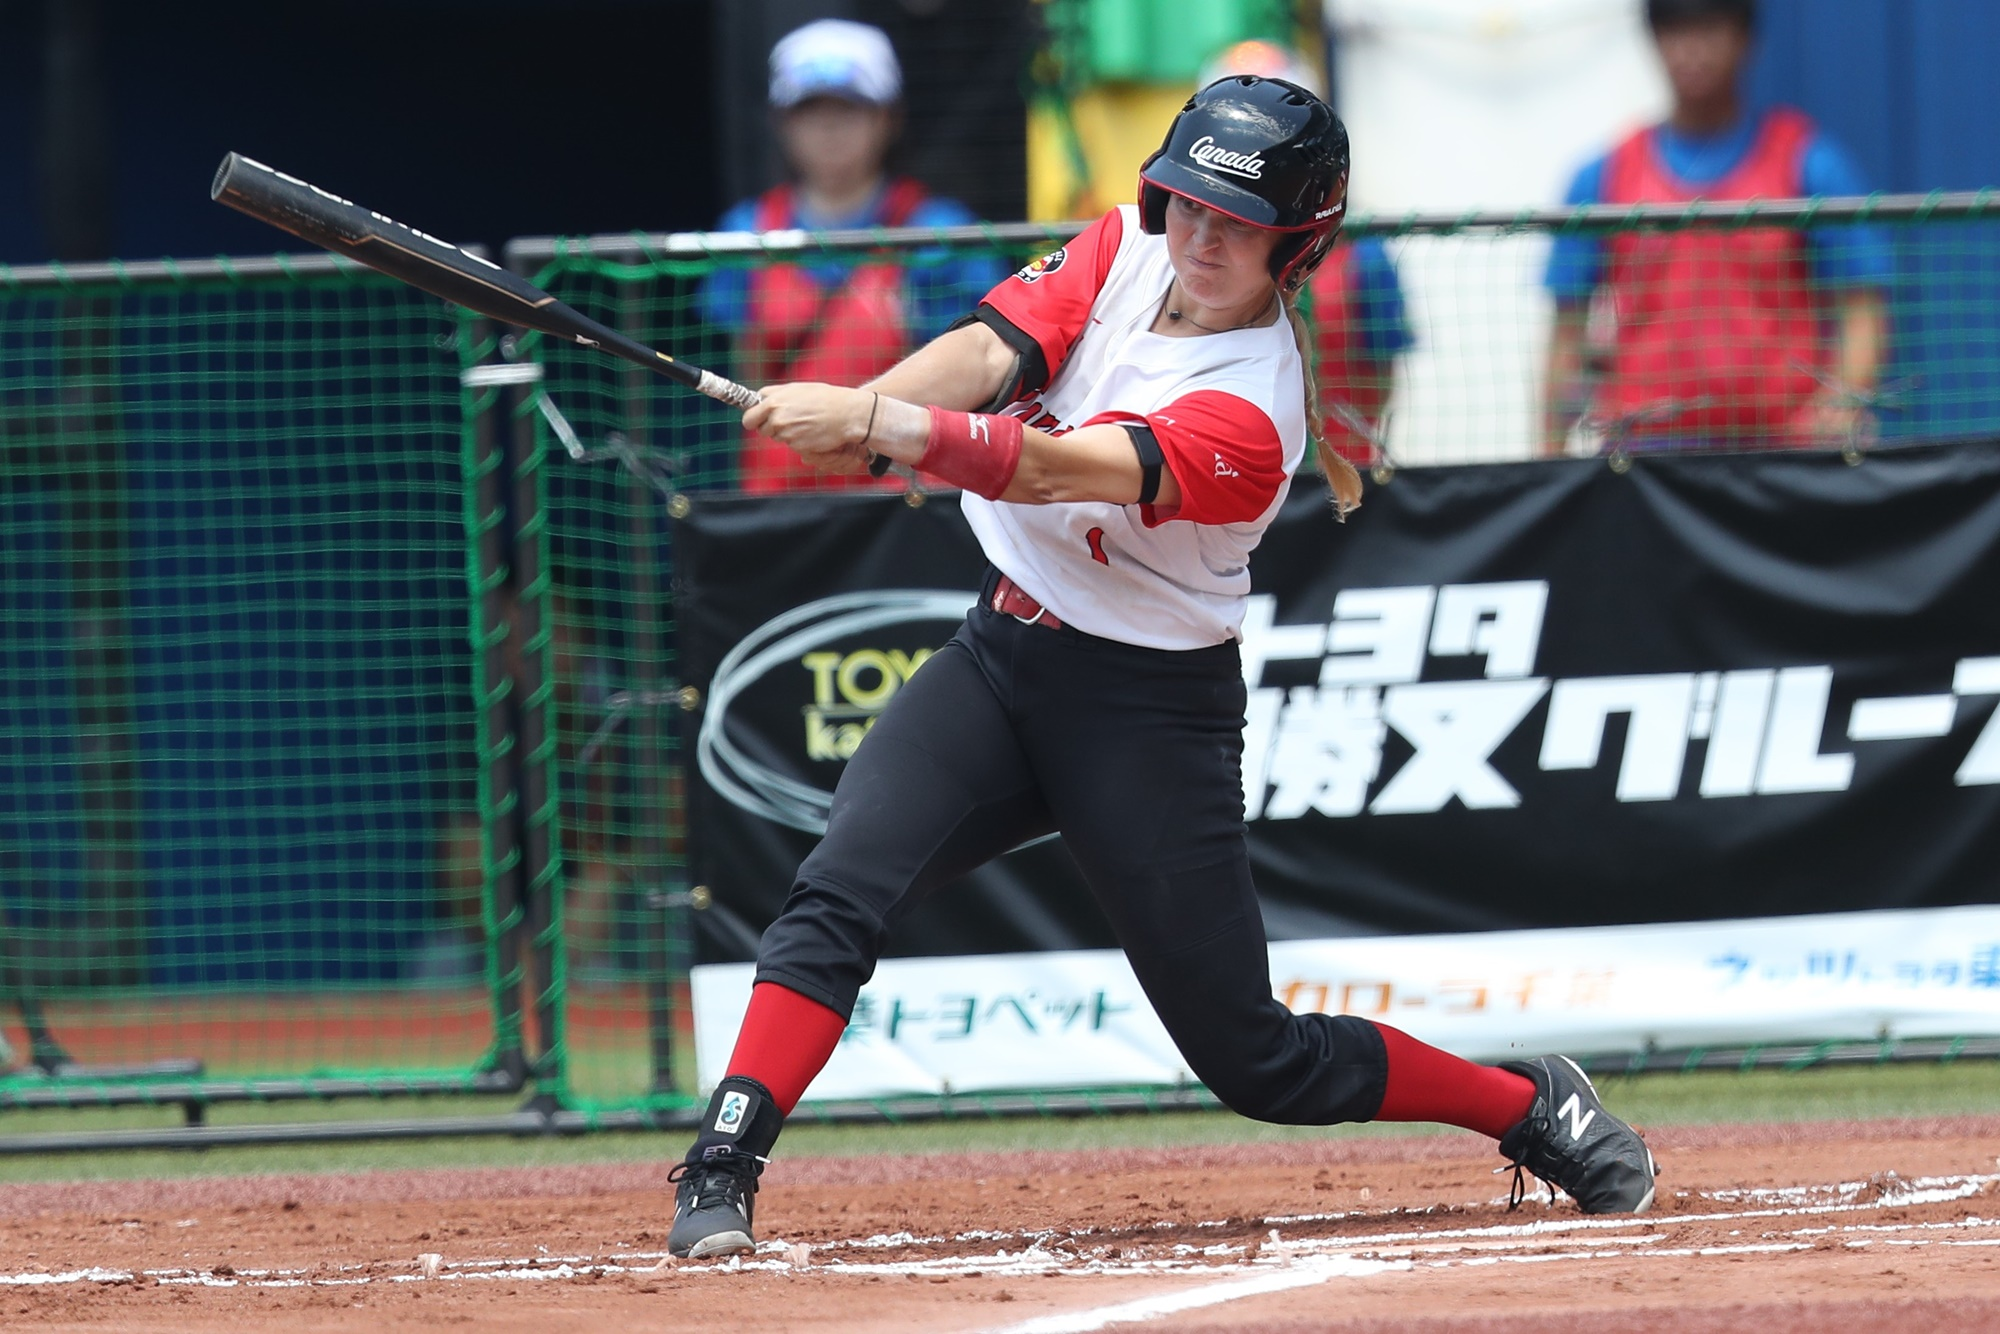 Canada slugged four home runs against Puerto Rico. Here Erika Polidori swings for the fences